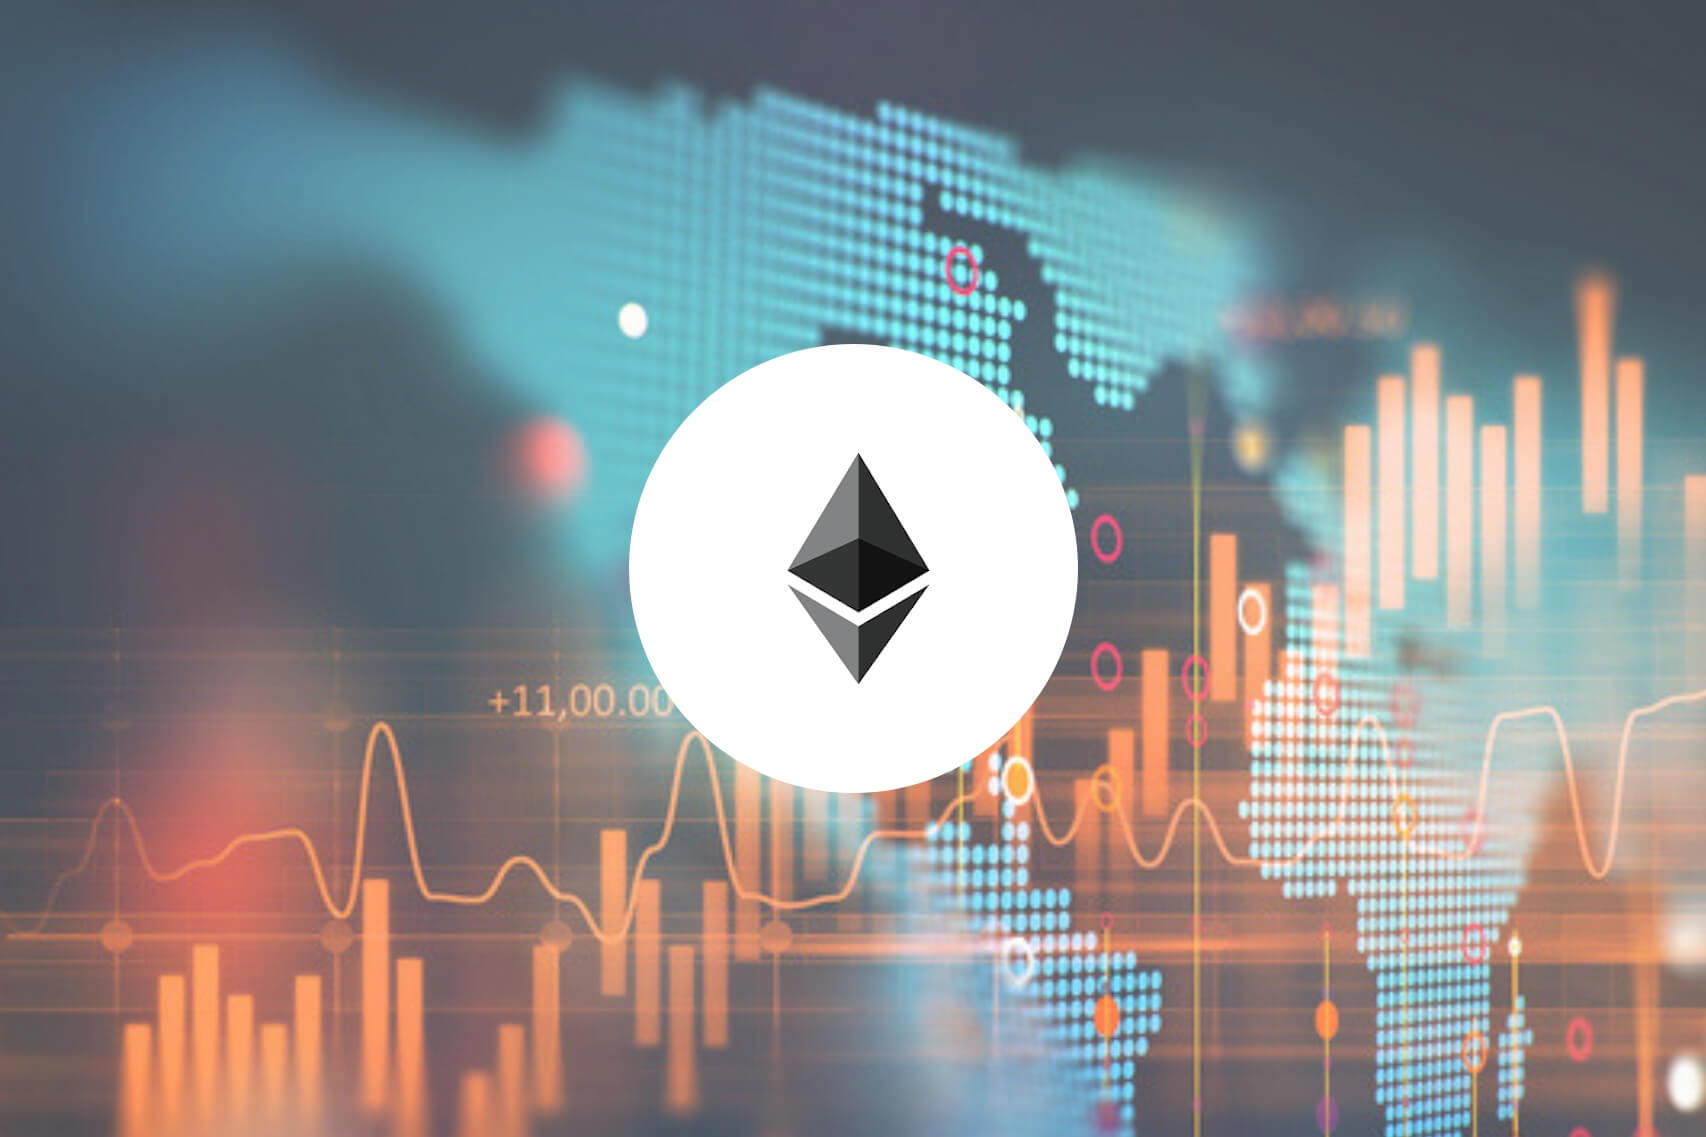 Ethereum Price Analysis: ETH Surges By 25% as It Reclaims the Number 2 Ranking — Can the Bulls Now Break Above $127?